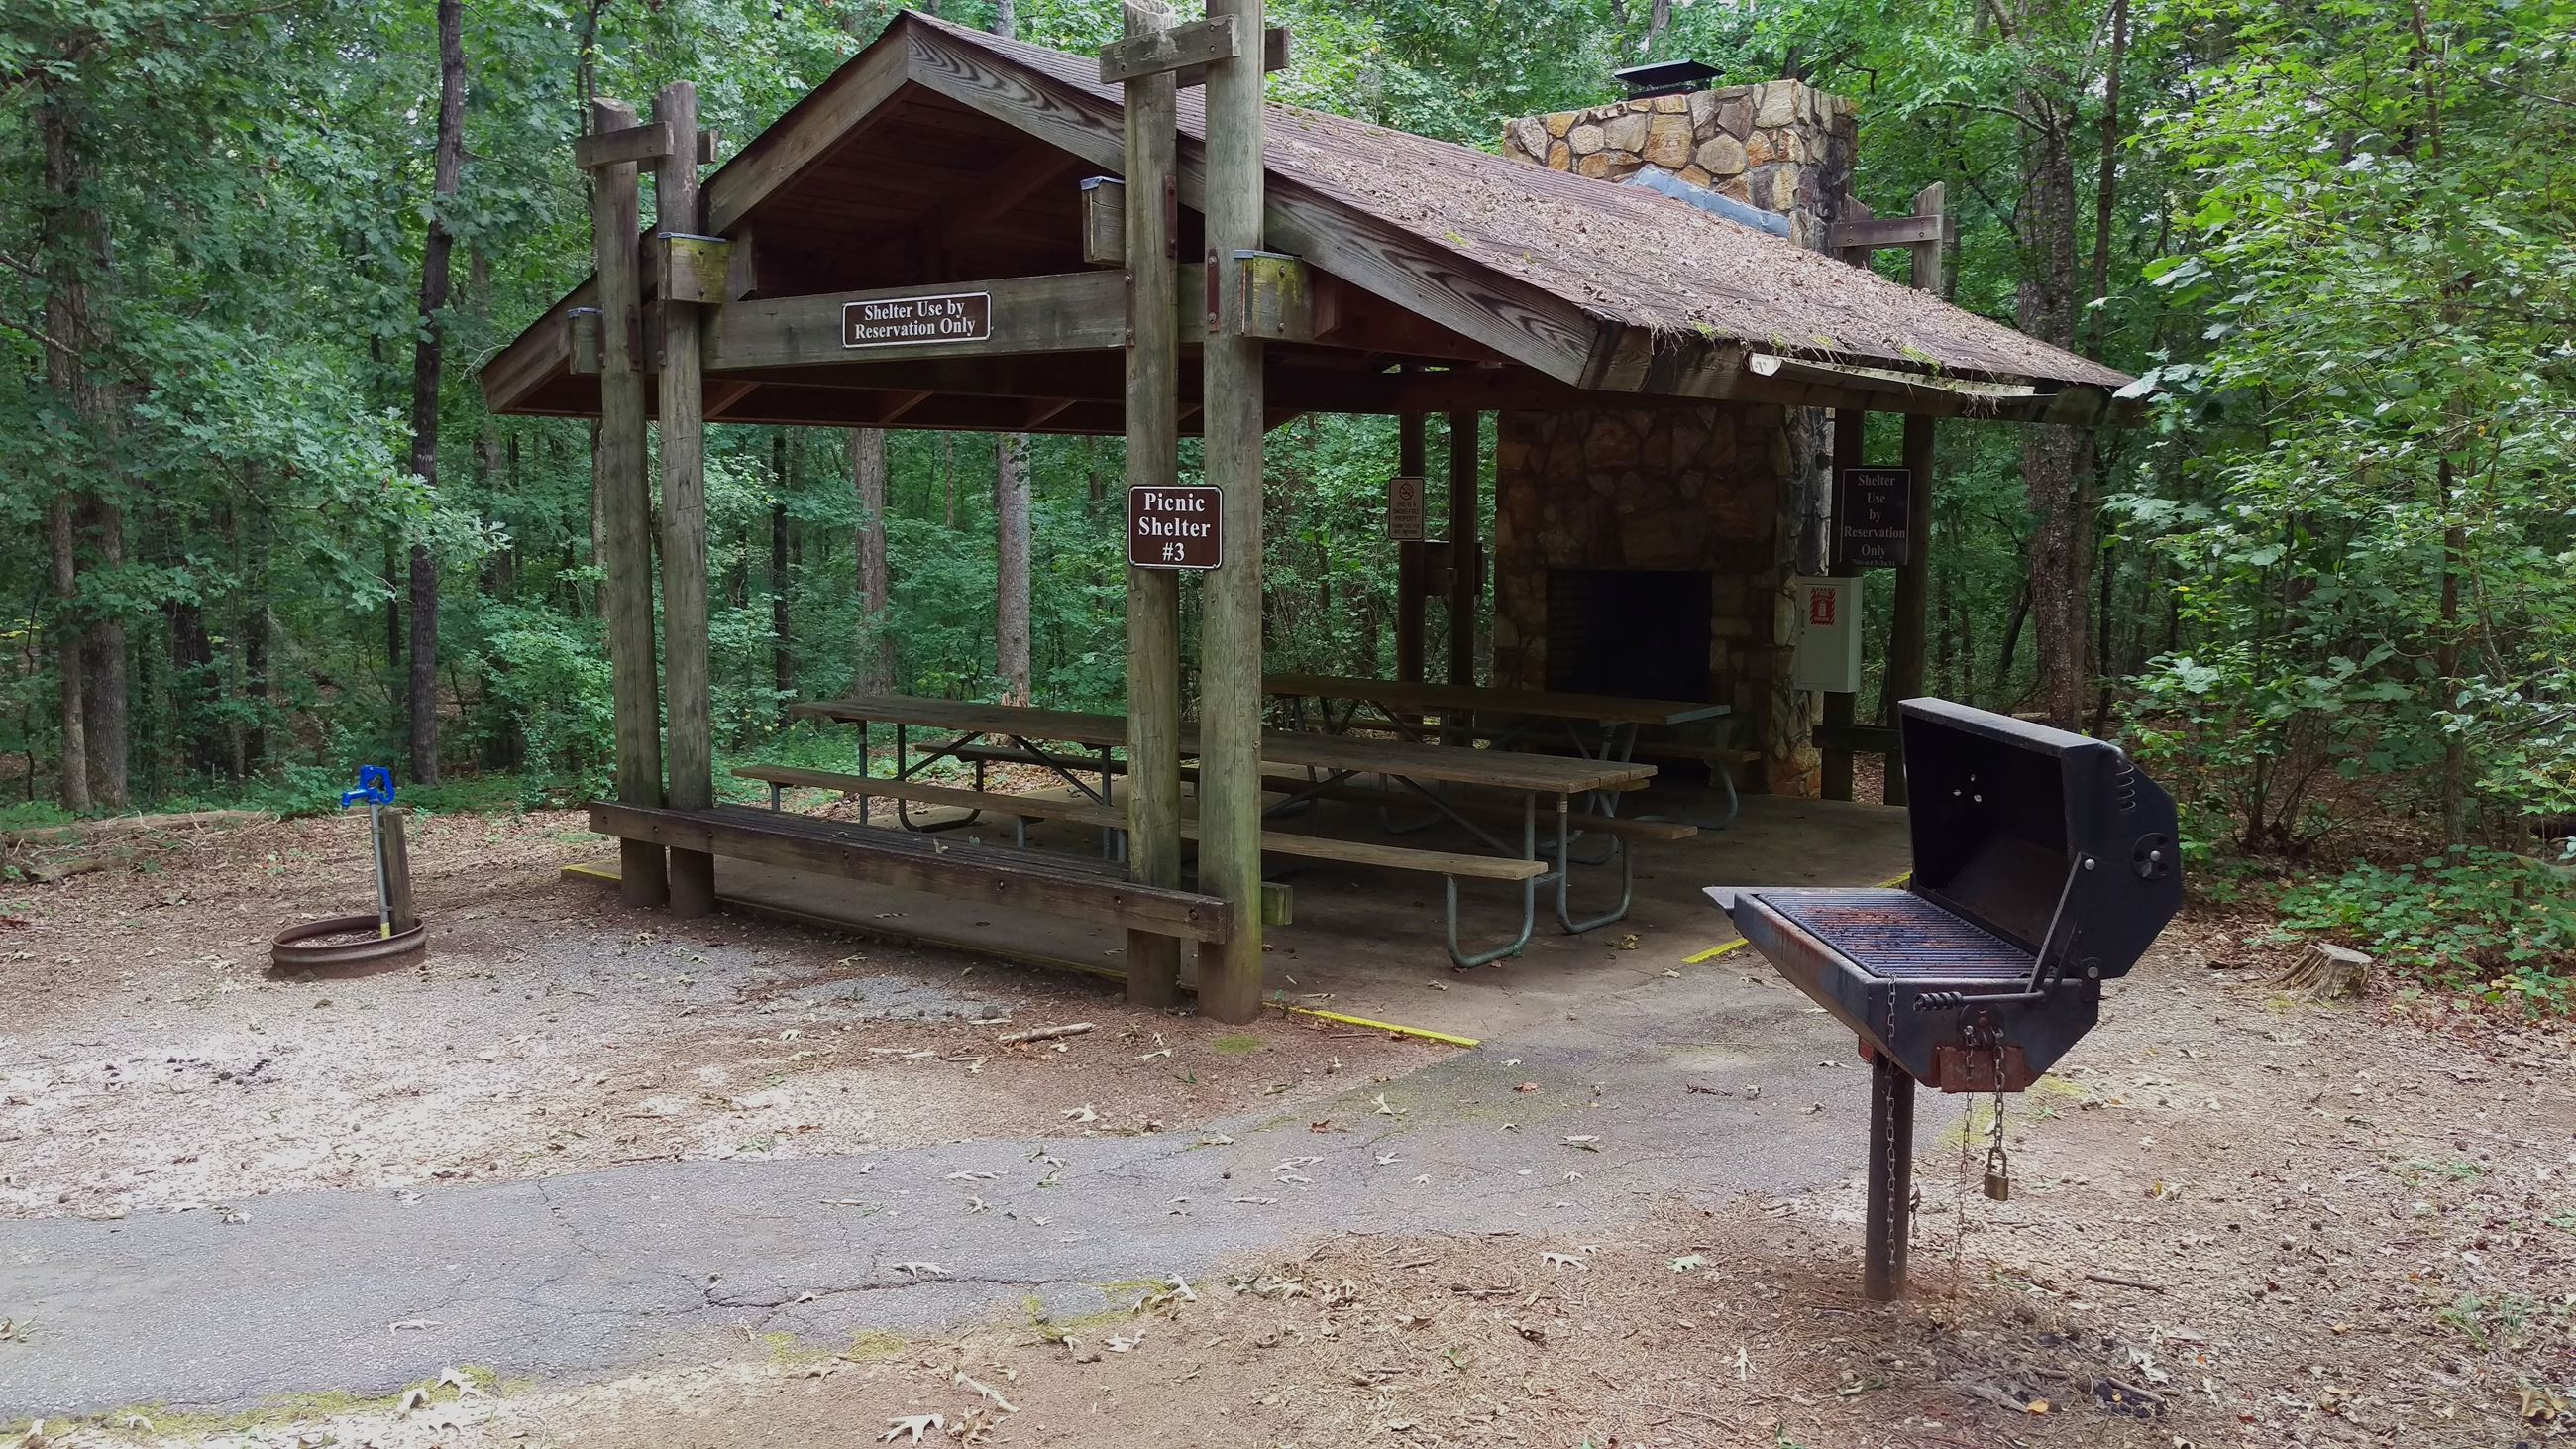 Photo of Picnic Shelter 3 at Sandy Creek Park.